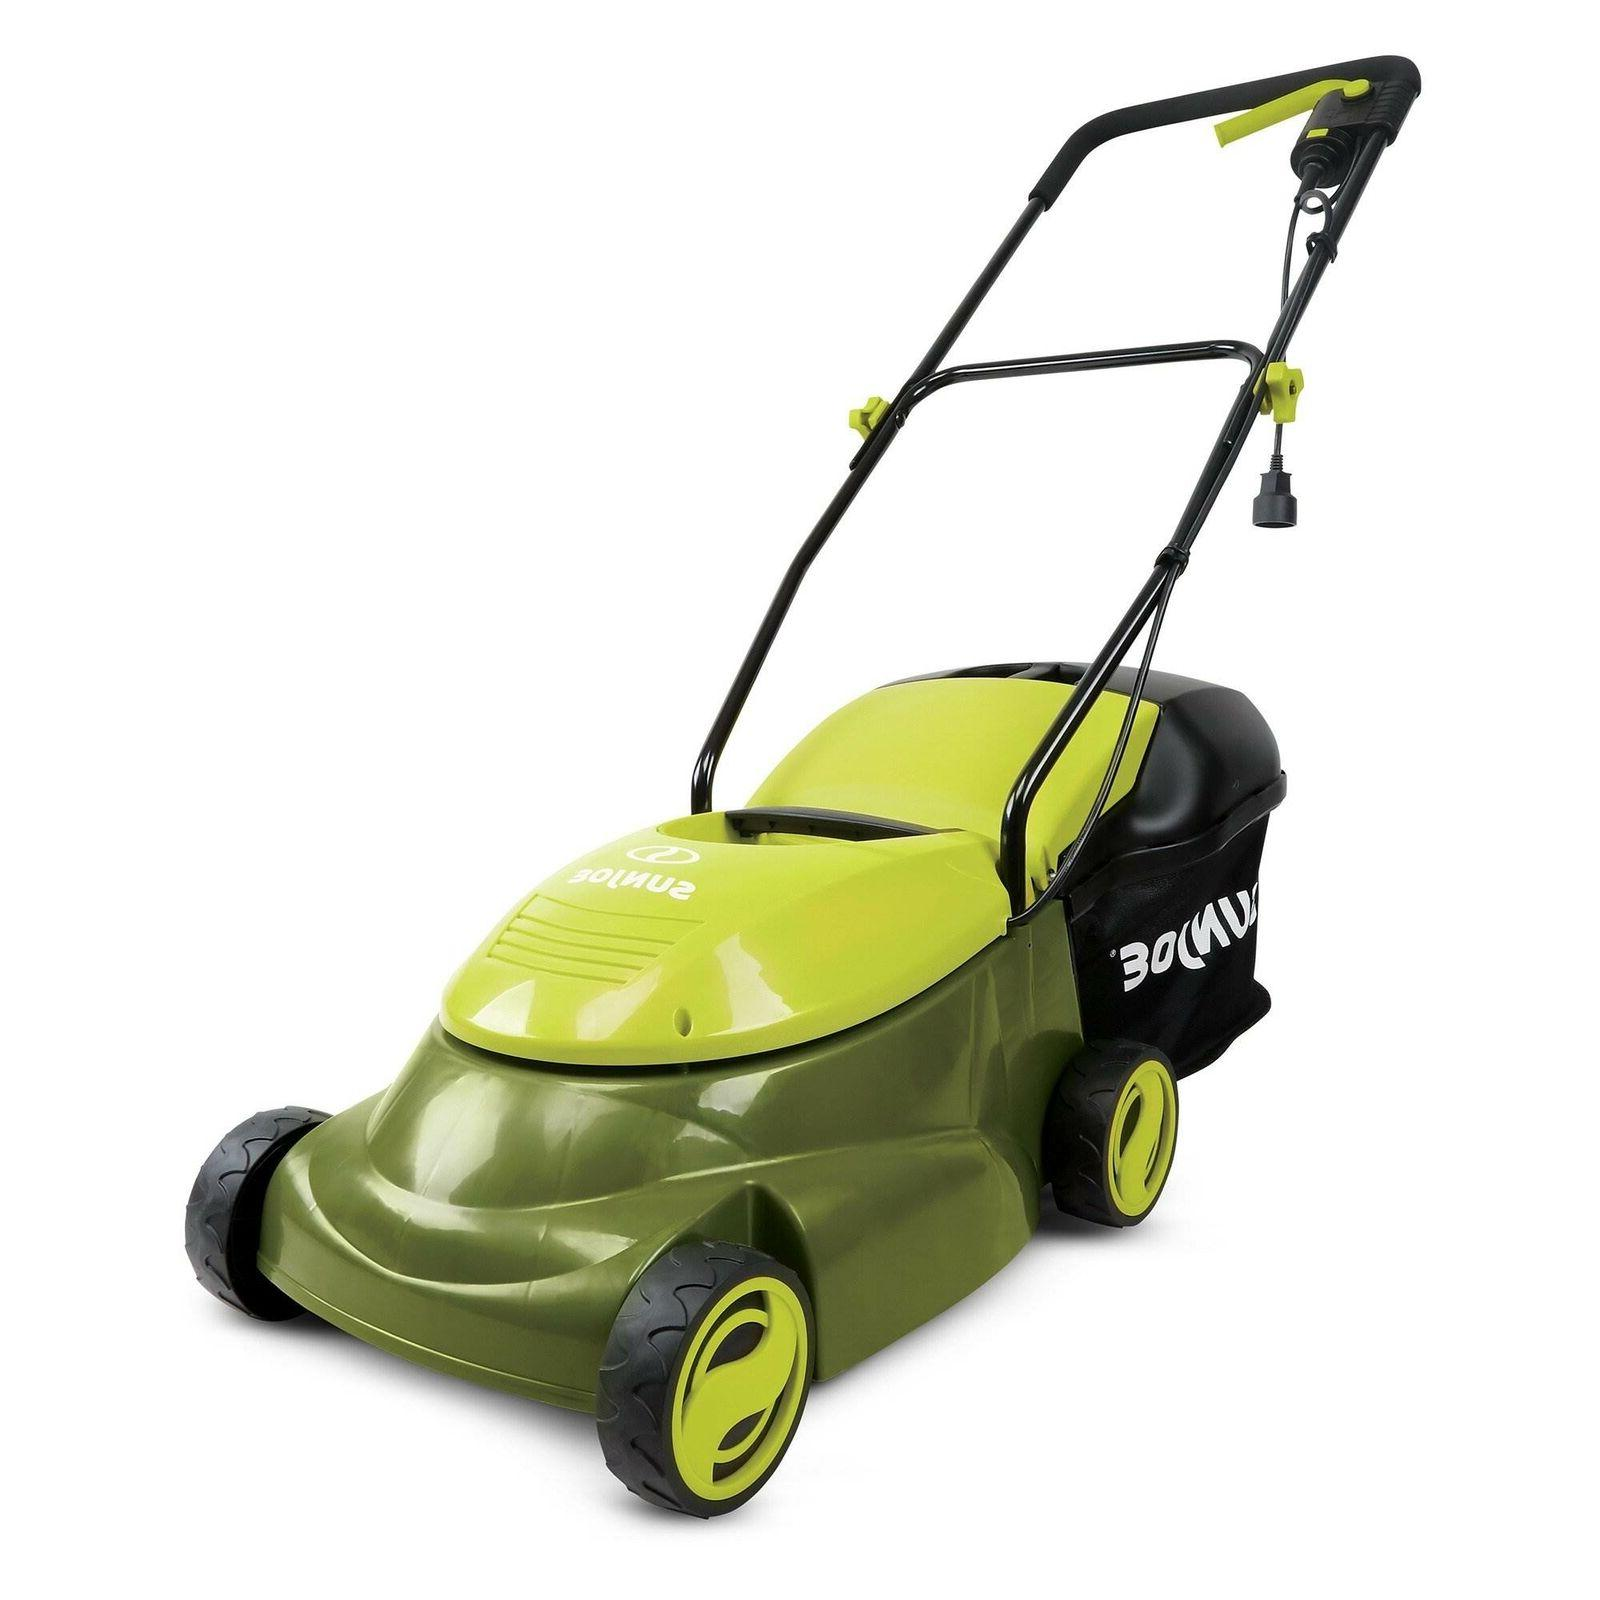 Sun MJ401E 14 Inch 12 Amp Electric Push Walk Behind Mower